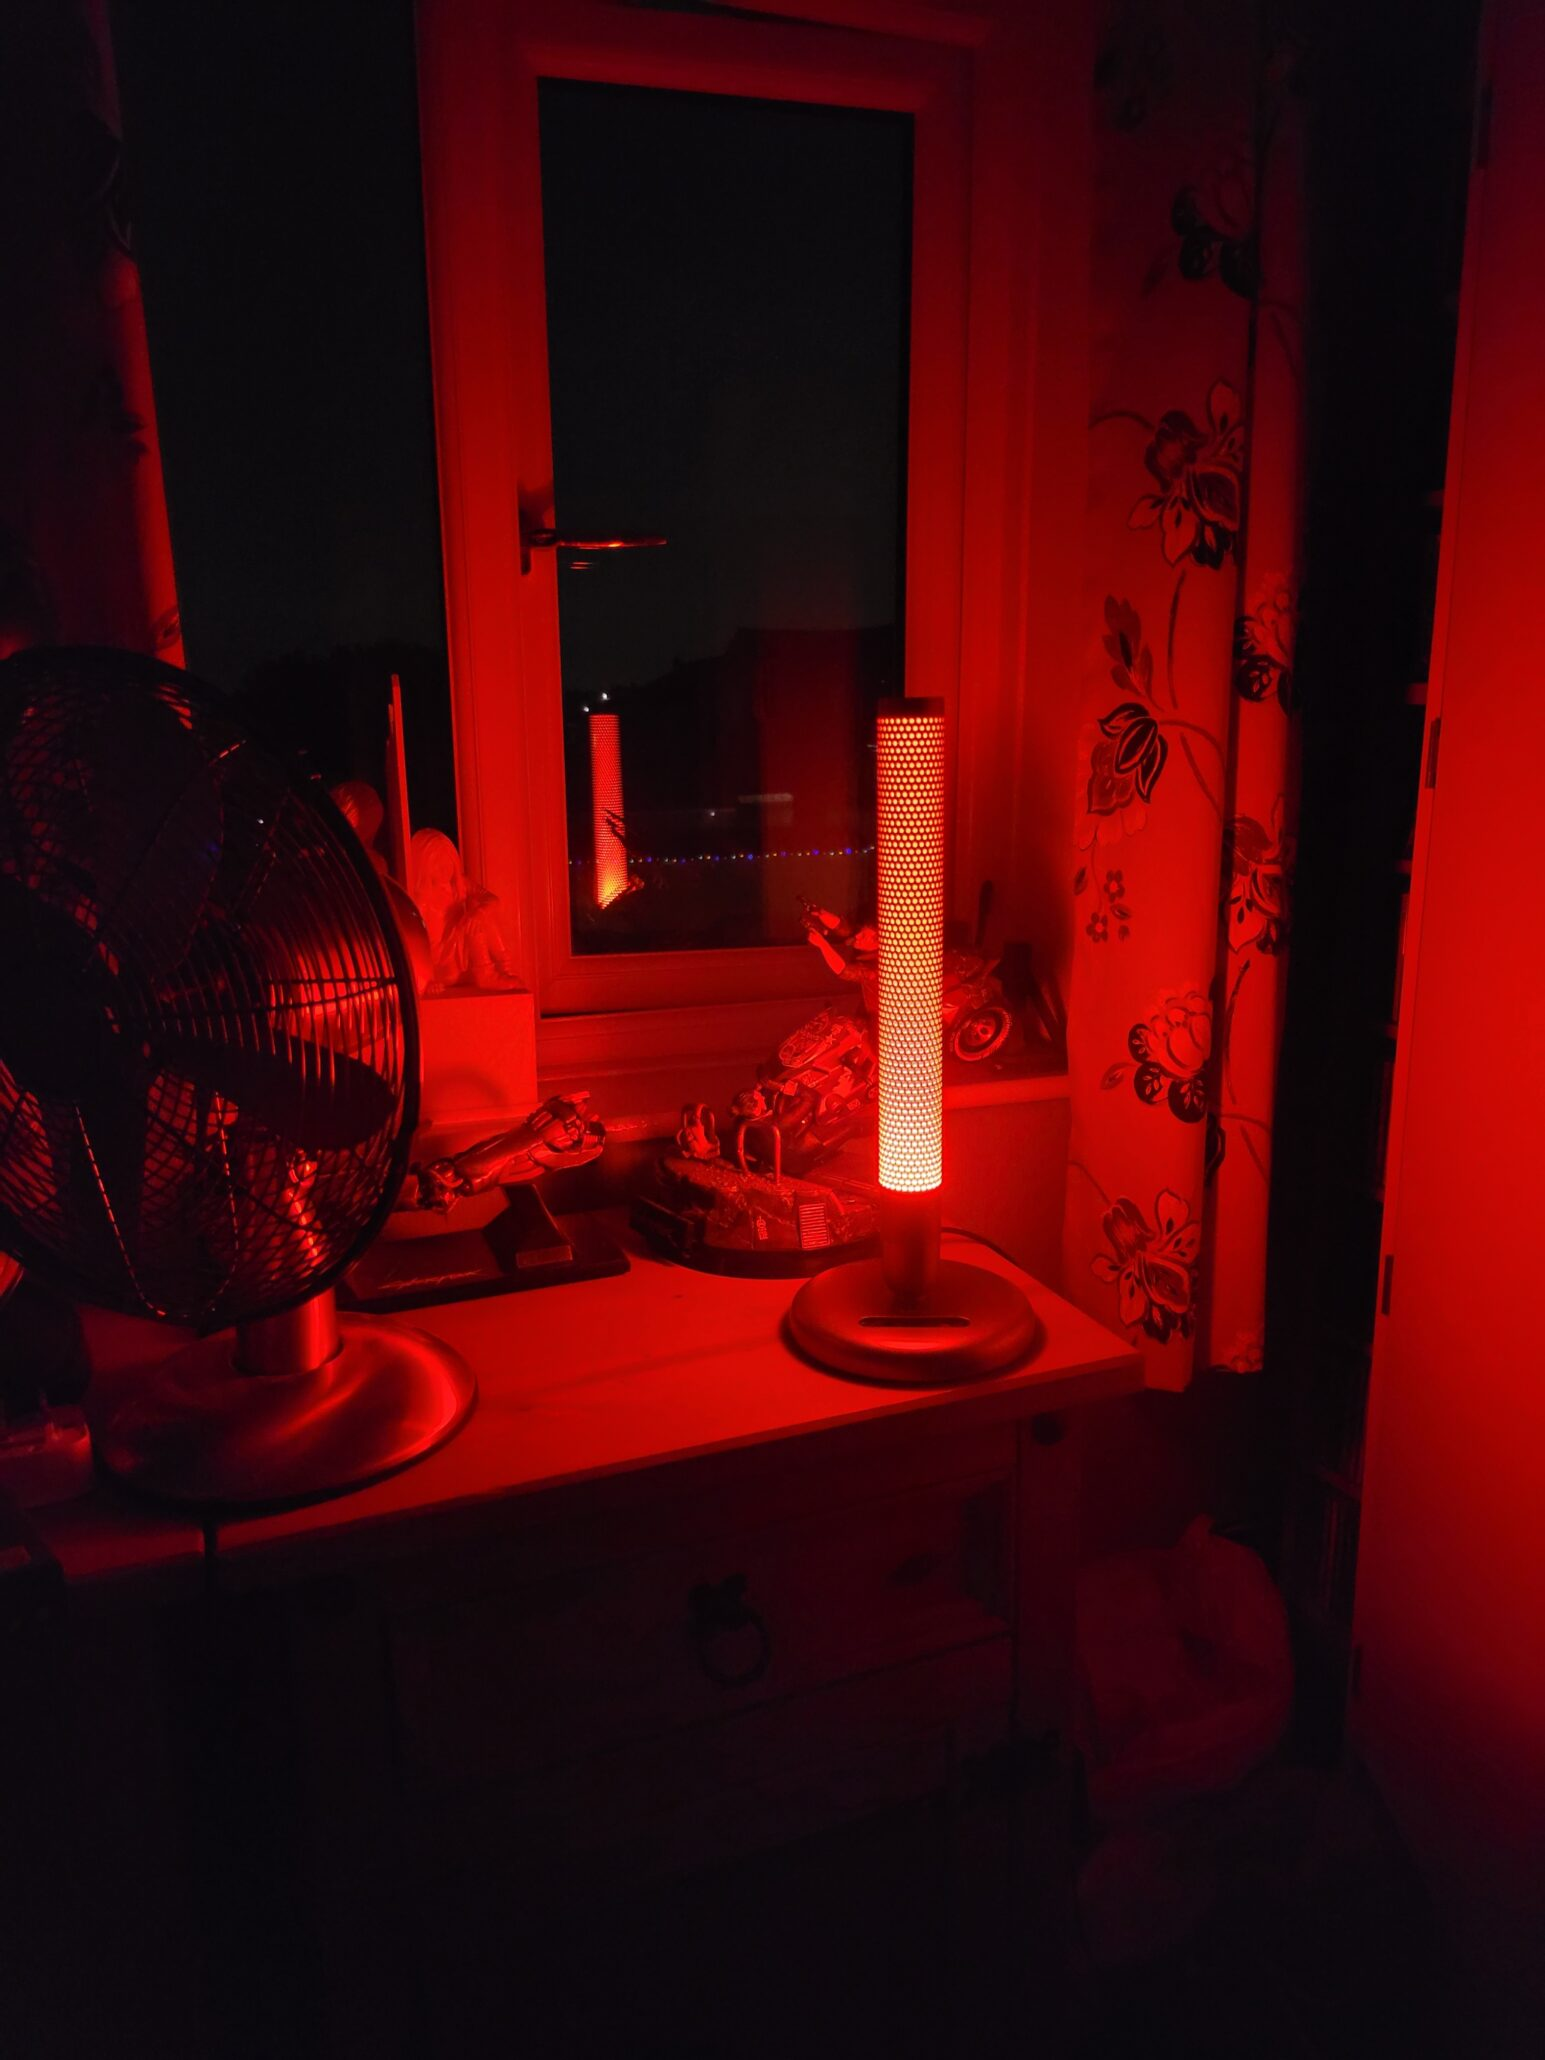 govee-glow-smart-lamp-review-04-part-3-red